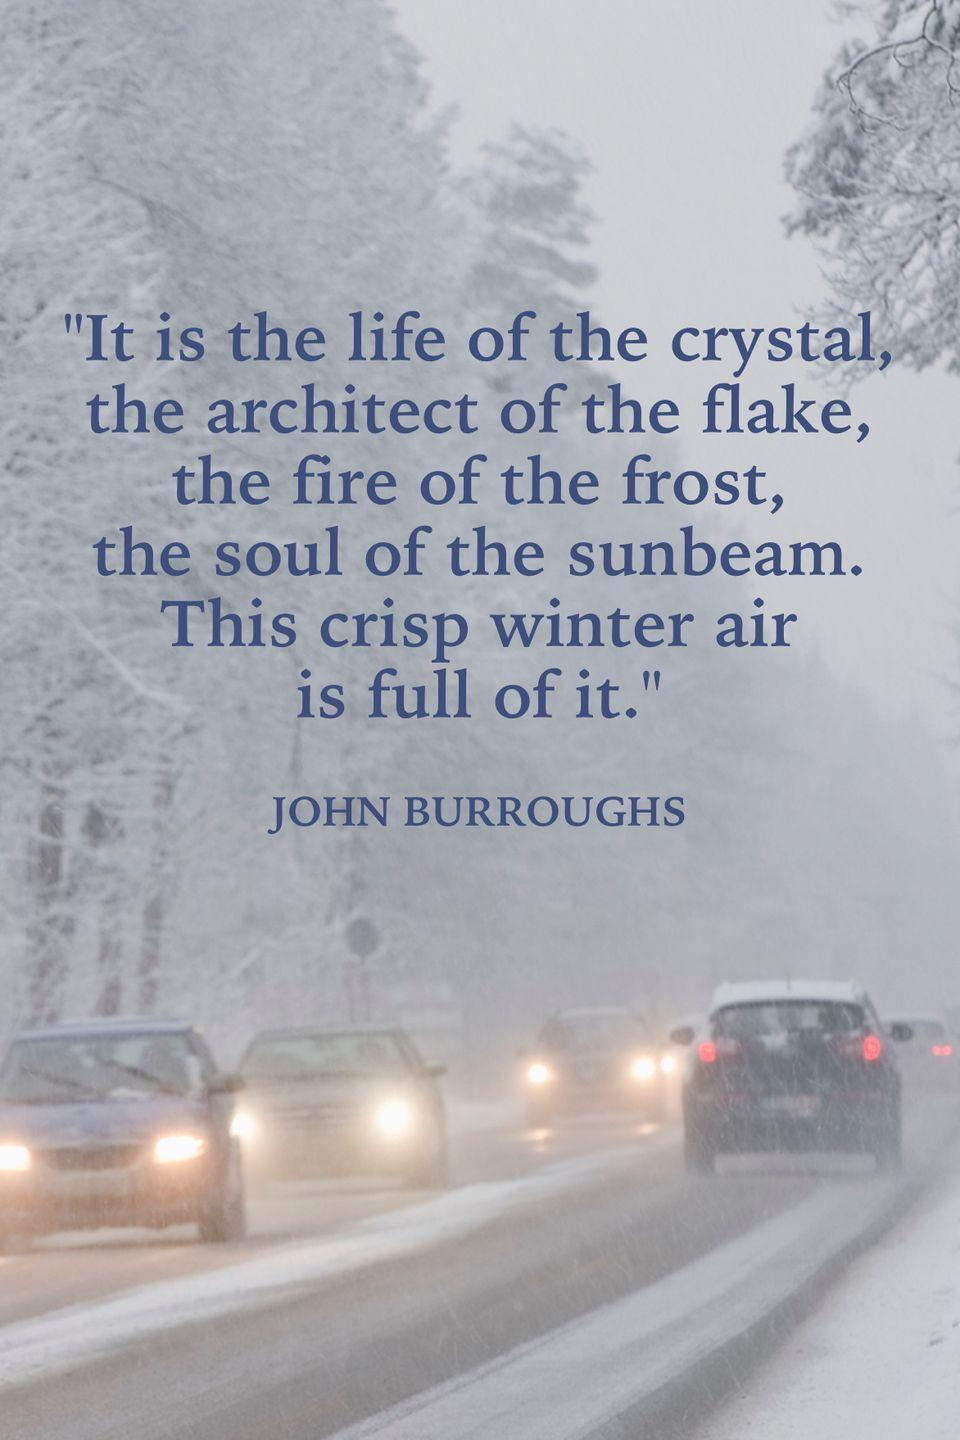 "<p>""It is the life of the crystal, the architect of the flake, the fire of the frost, the soul of the sunbeam. This crisp winter air is full of it.""</p>"